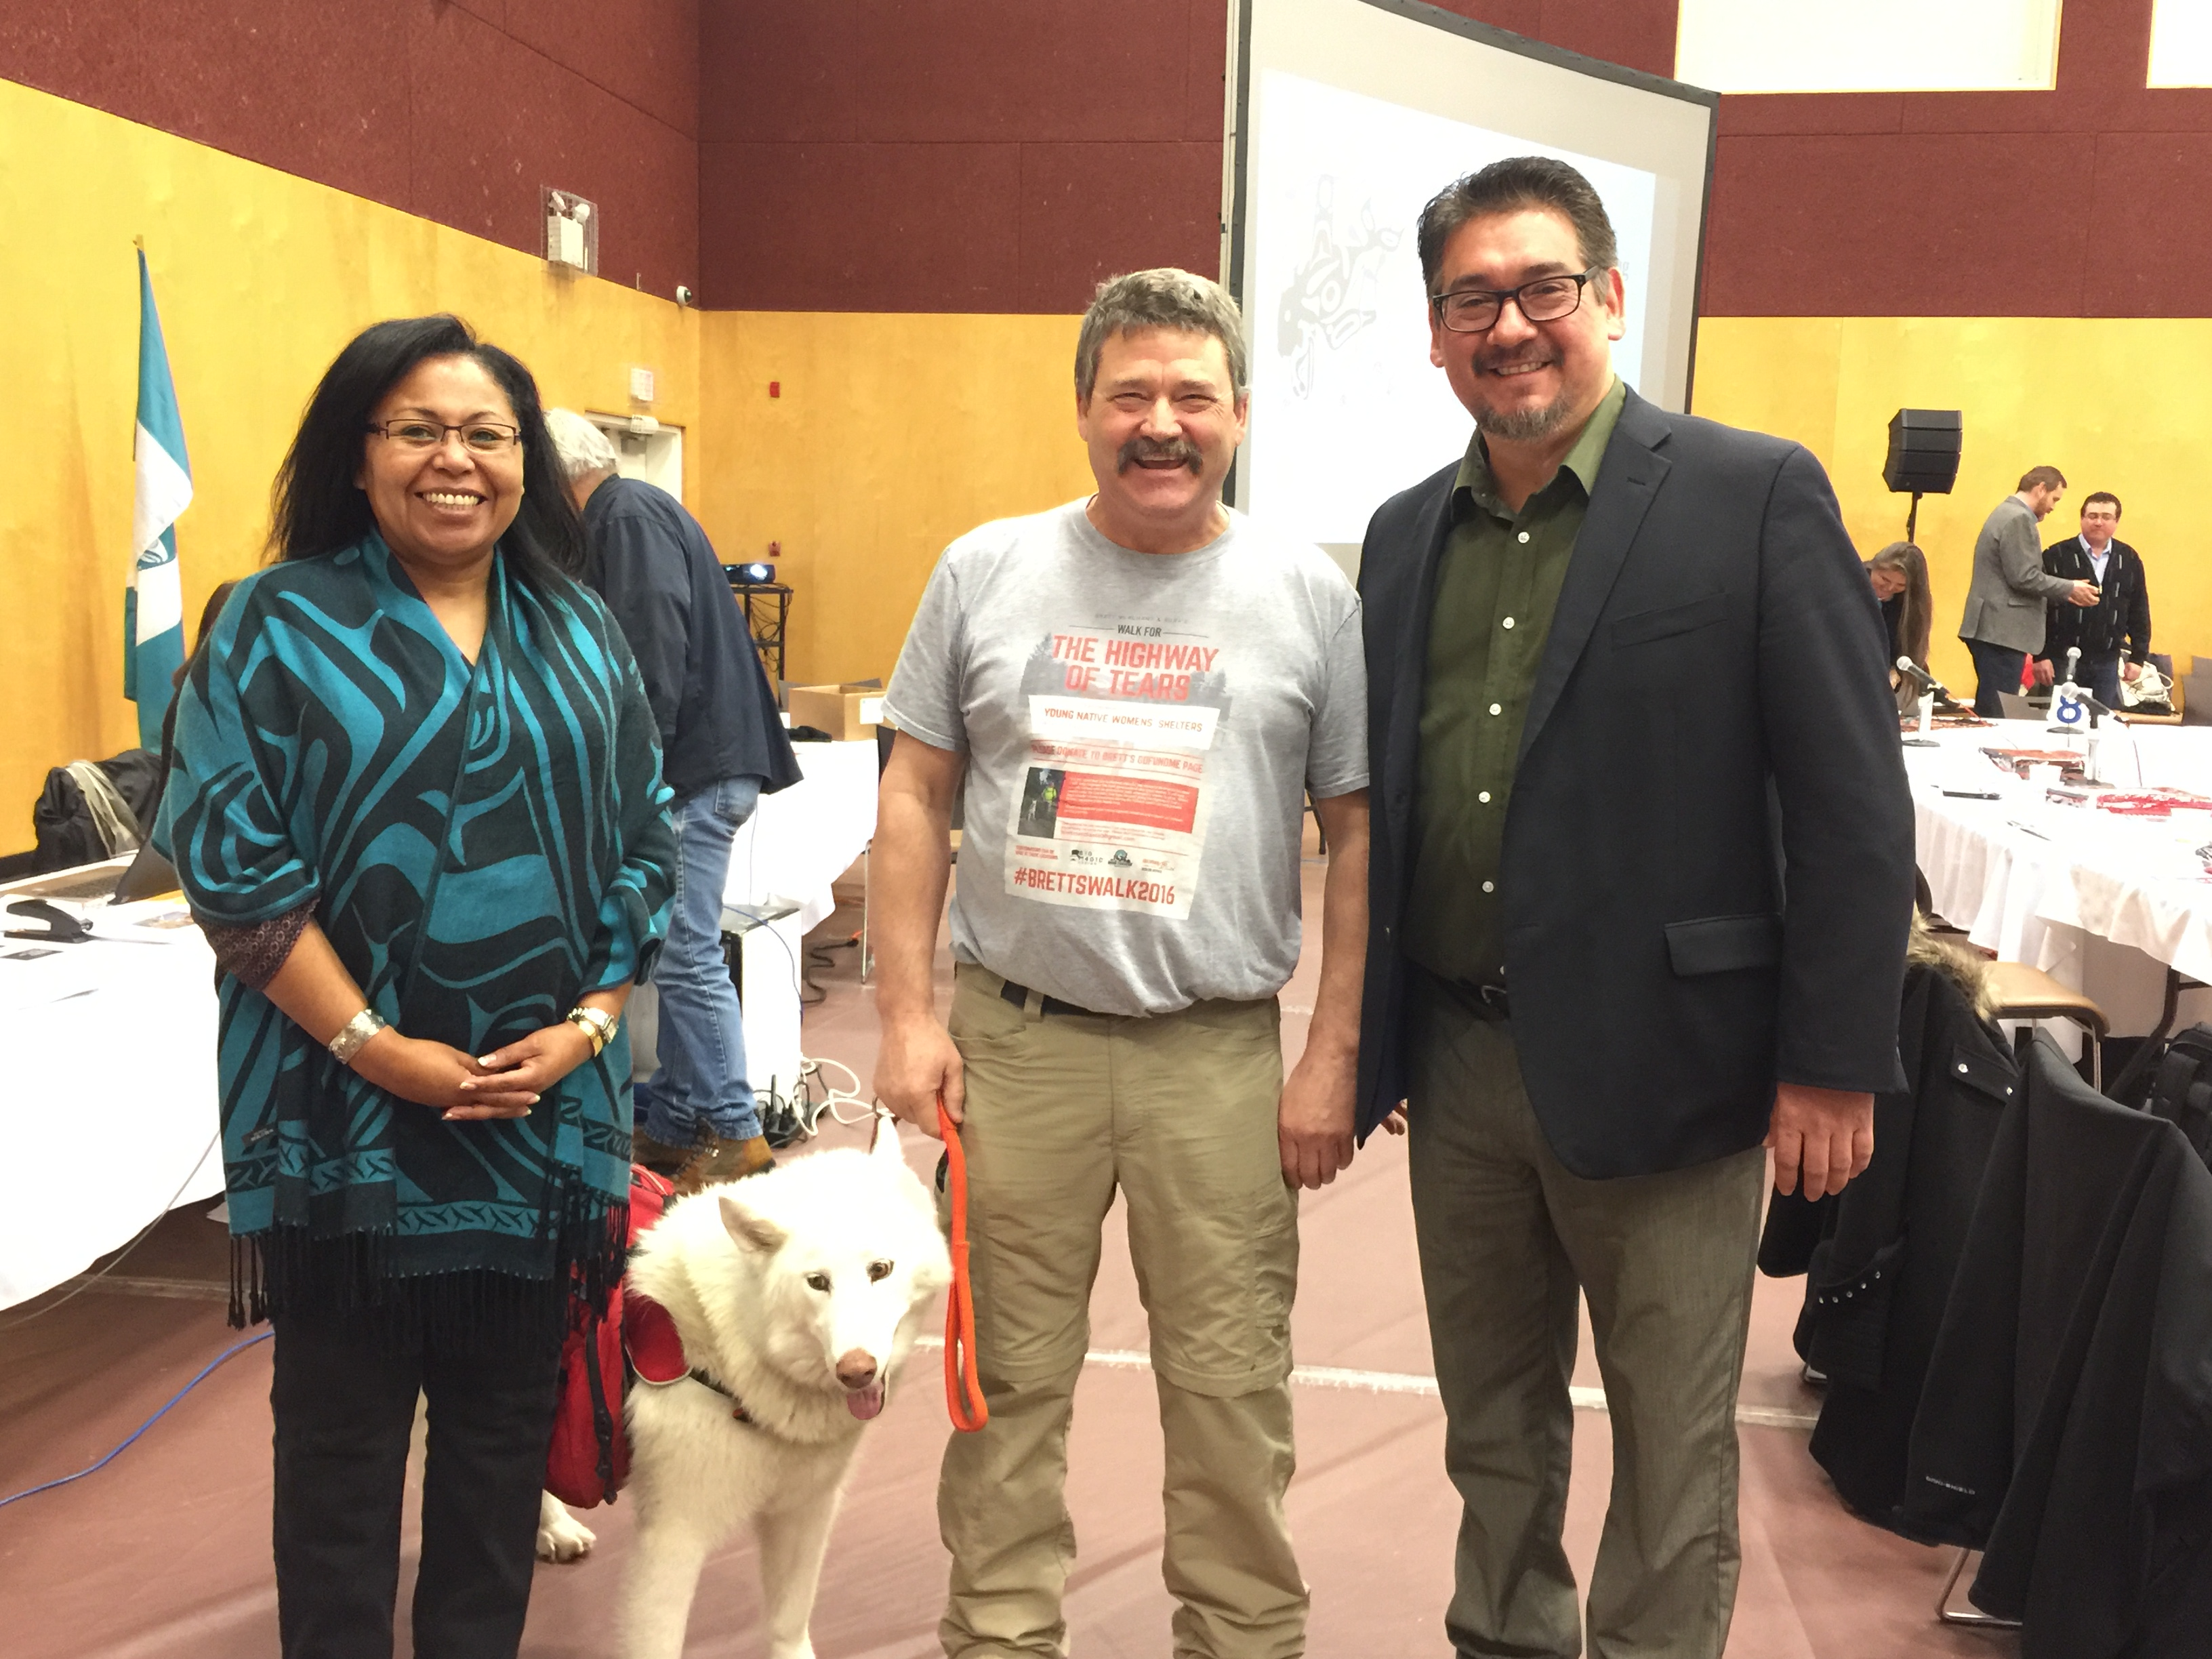 Cheryl Casimer (FNS Political Executive), Kura, Brett Merchant and Robert Phillips (FNS Political Executive) at the First Nations Summit (photo provided by FNS)